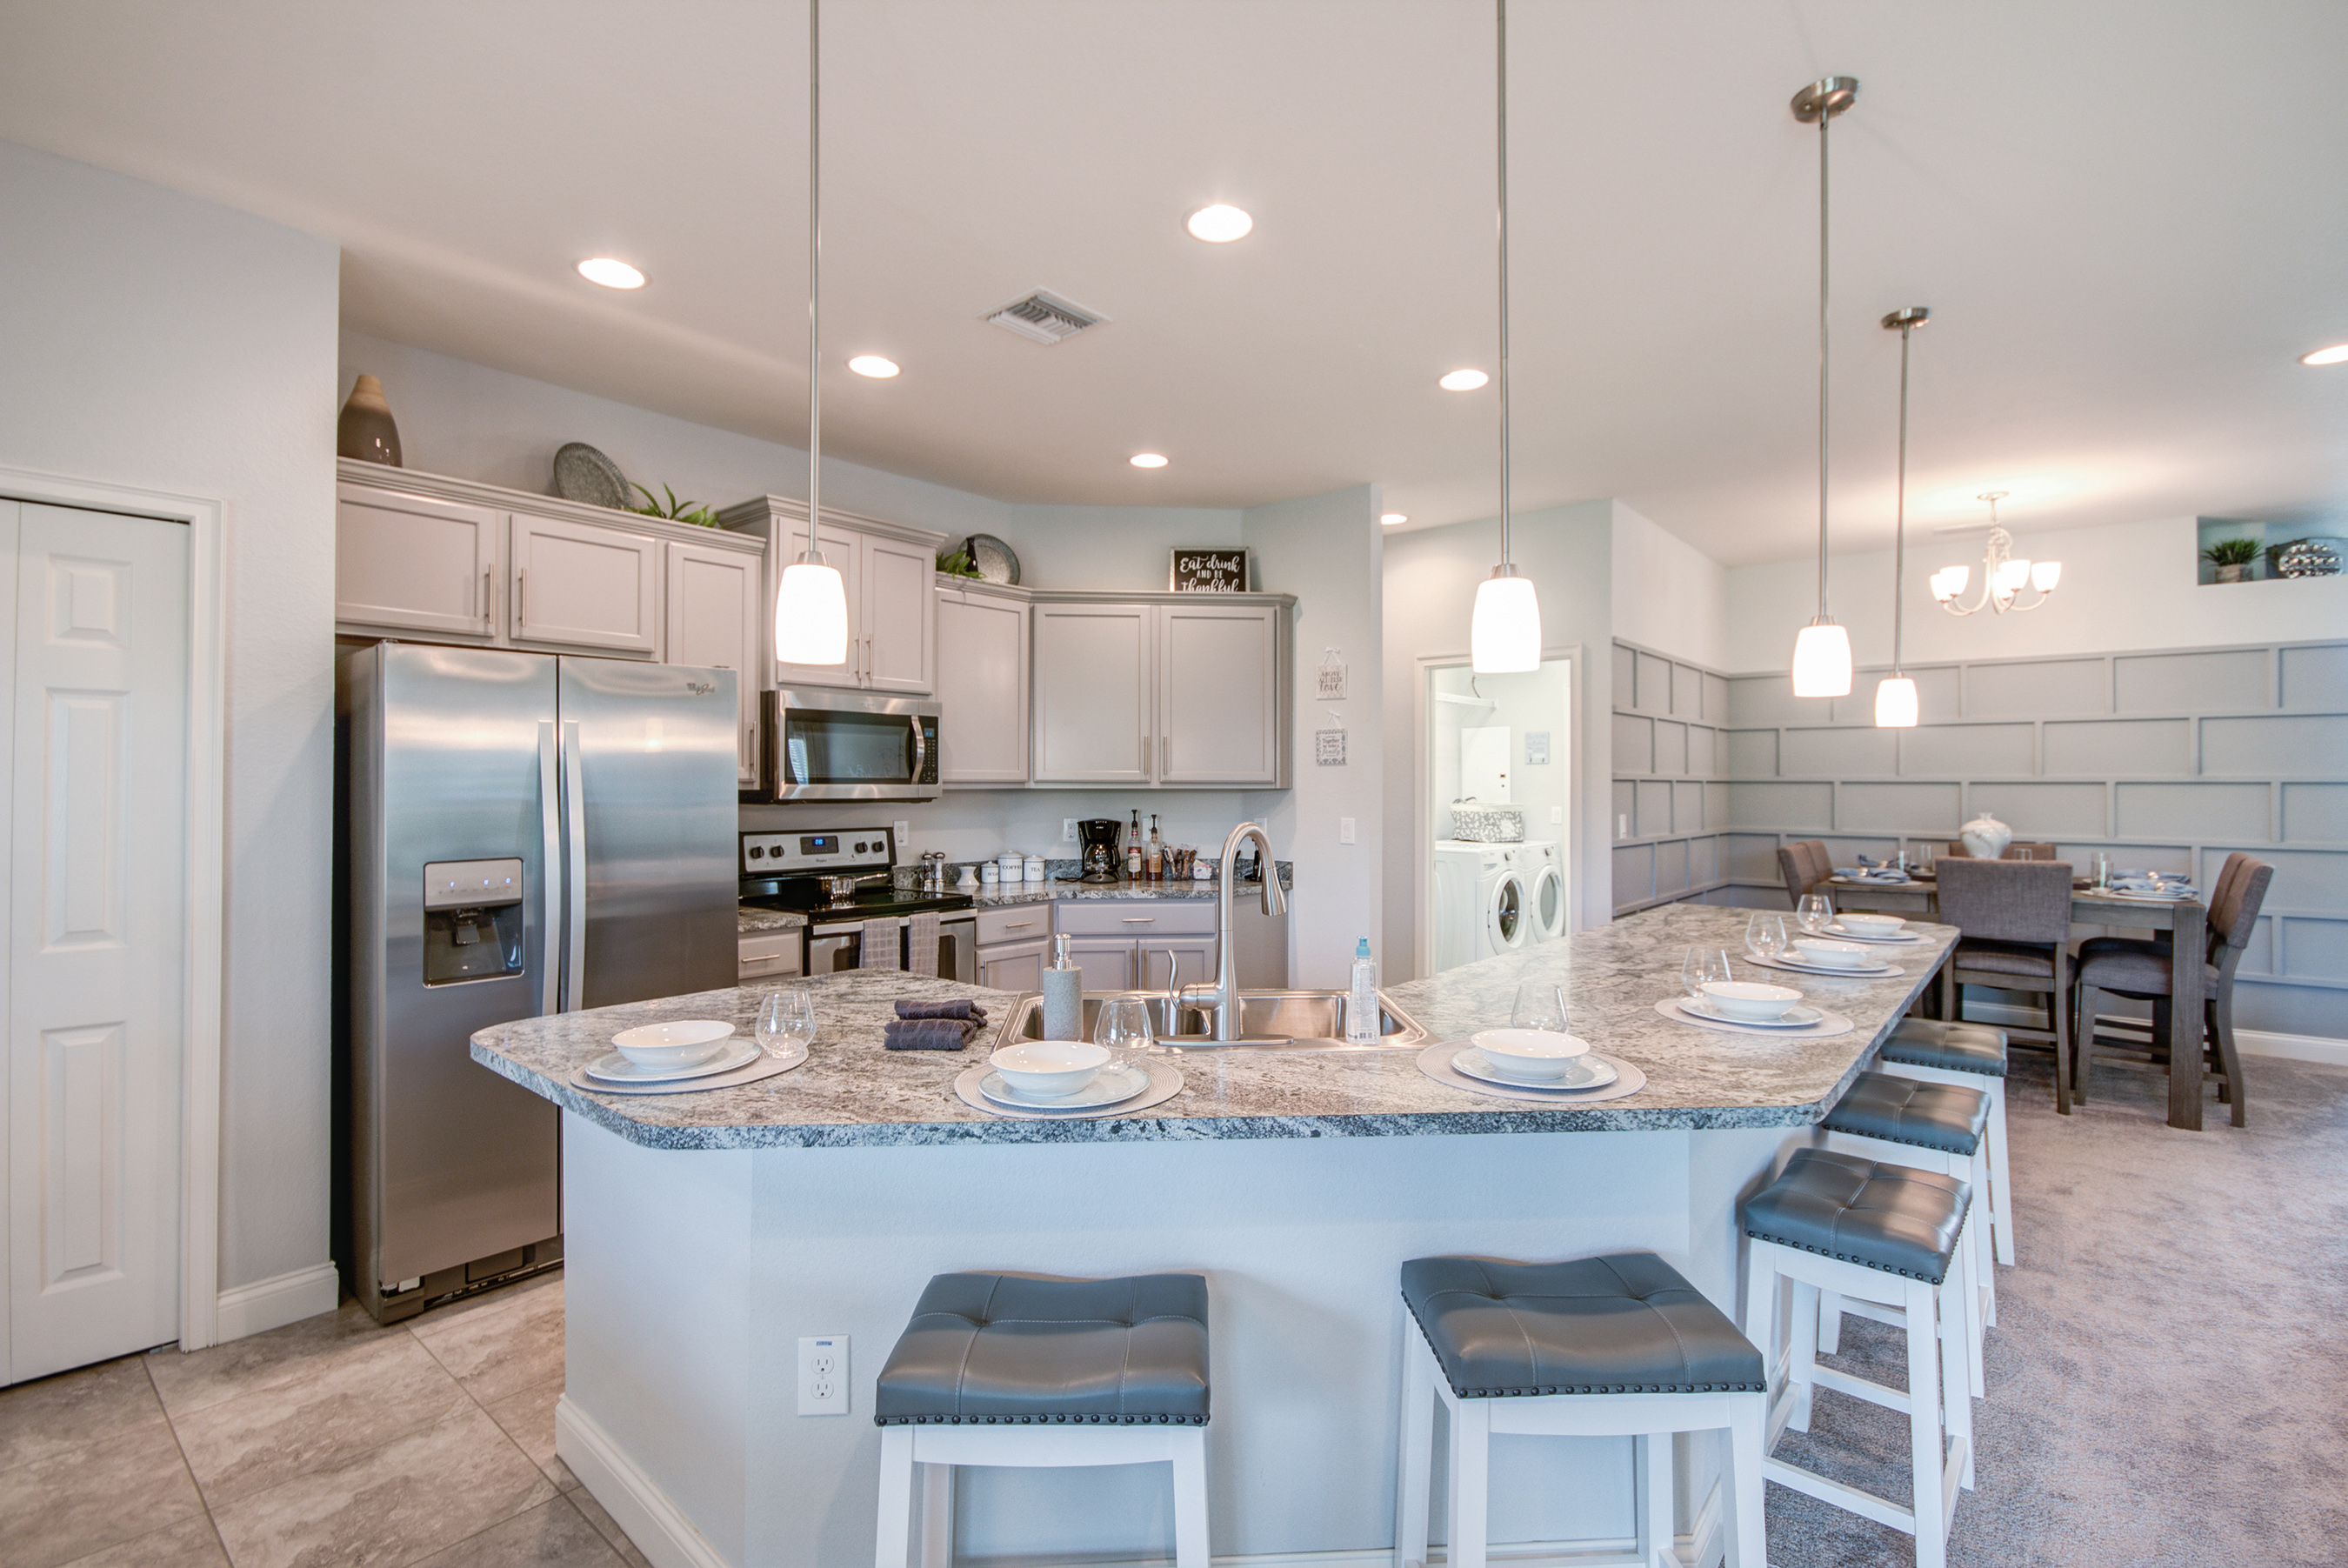 Highland Homes is focused on building high-quality, affordable homes in Central Florida, while providing an ultimate customer experience.